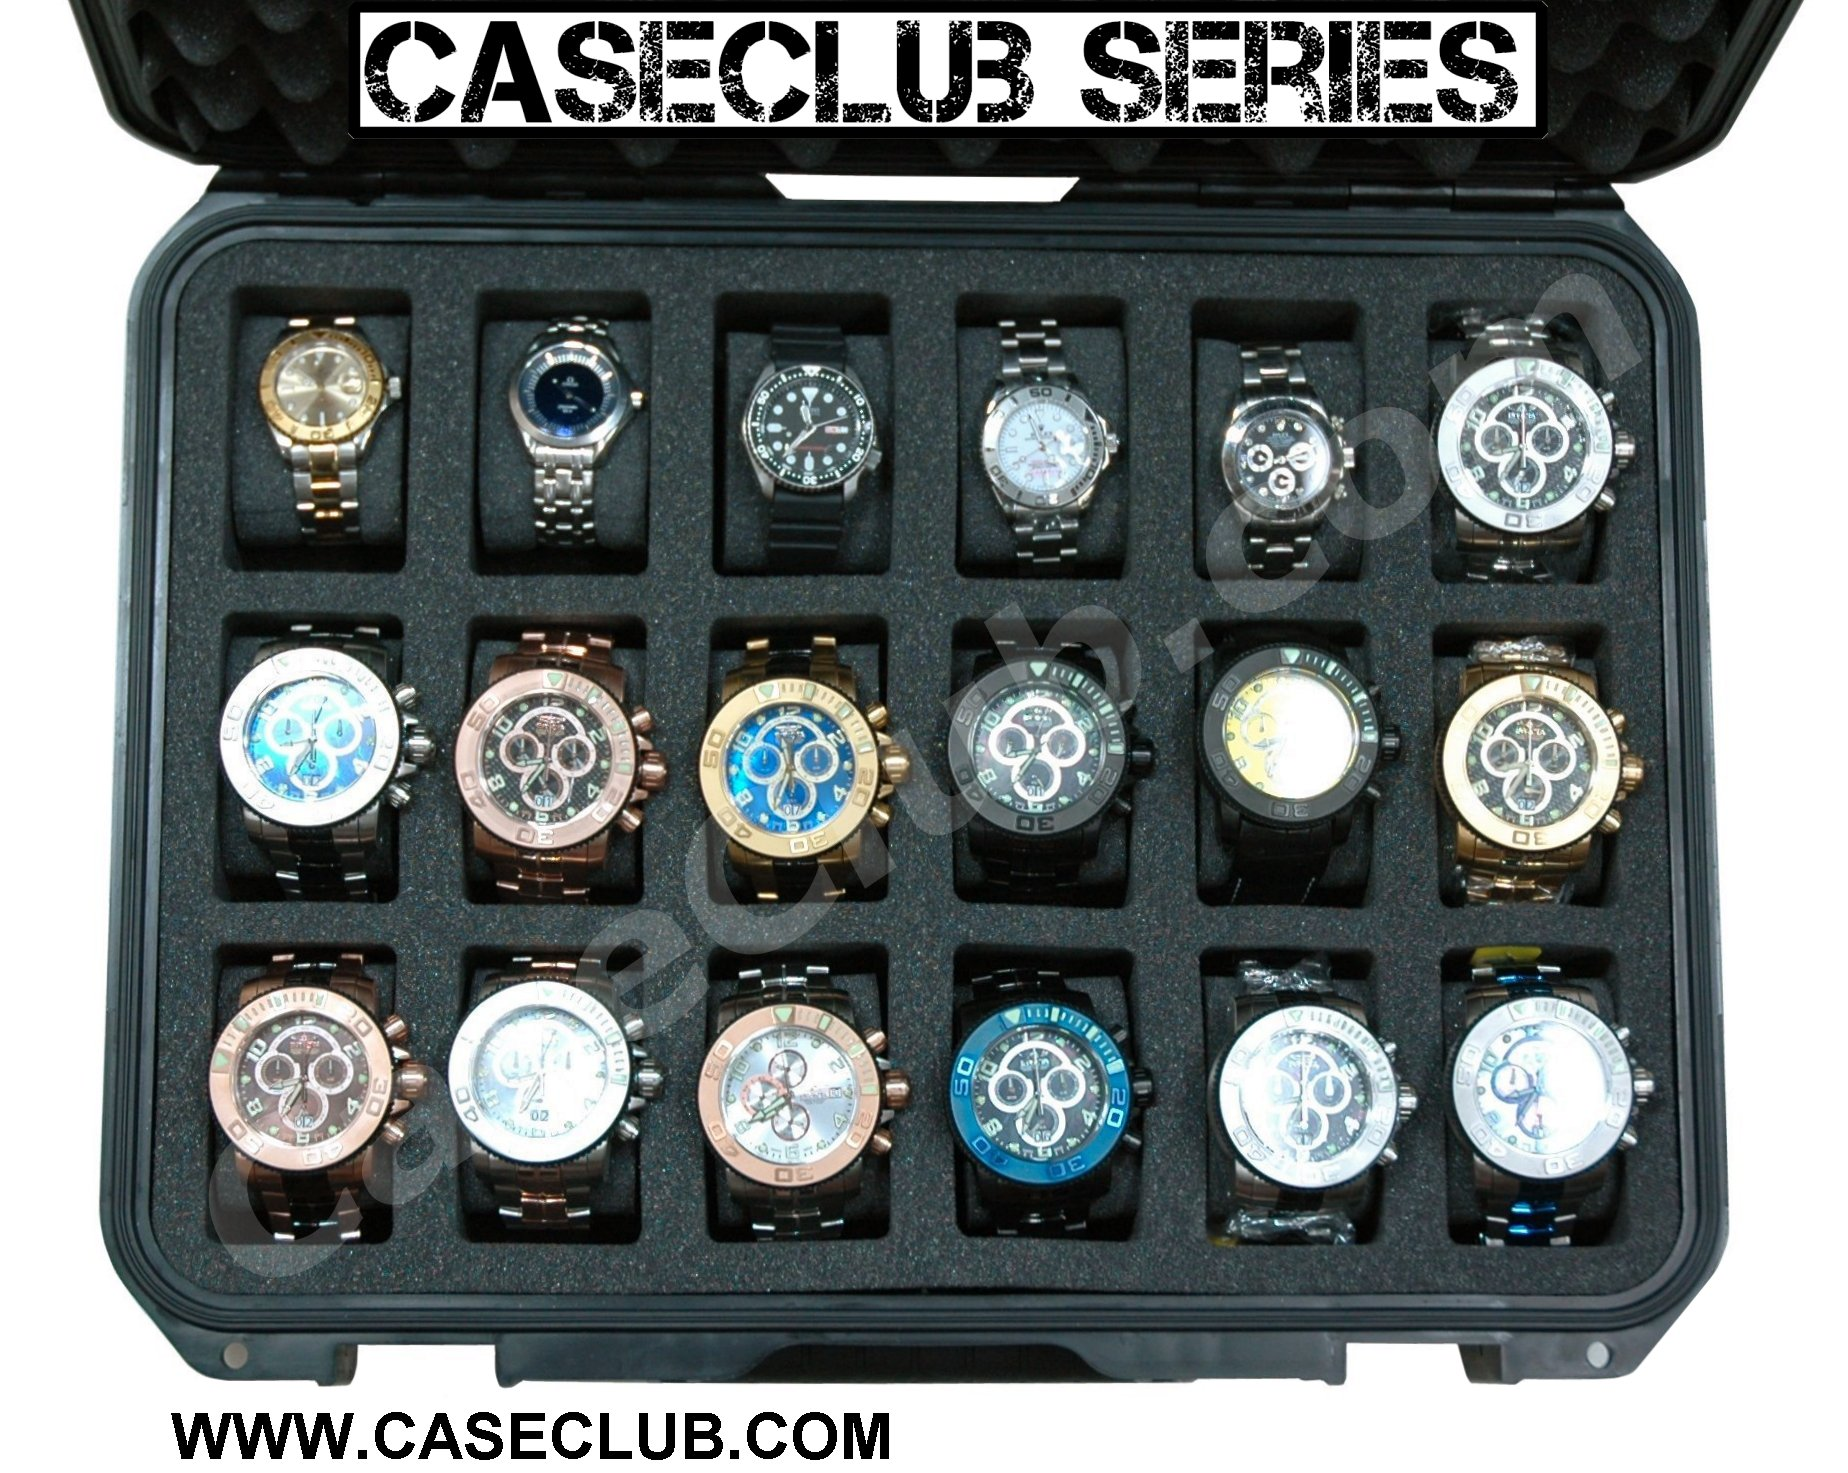 18 Watch Case Large Sized Watches Case Club